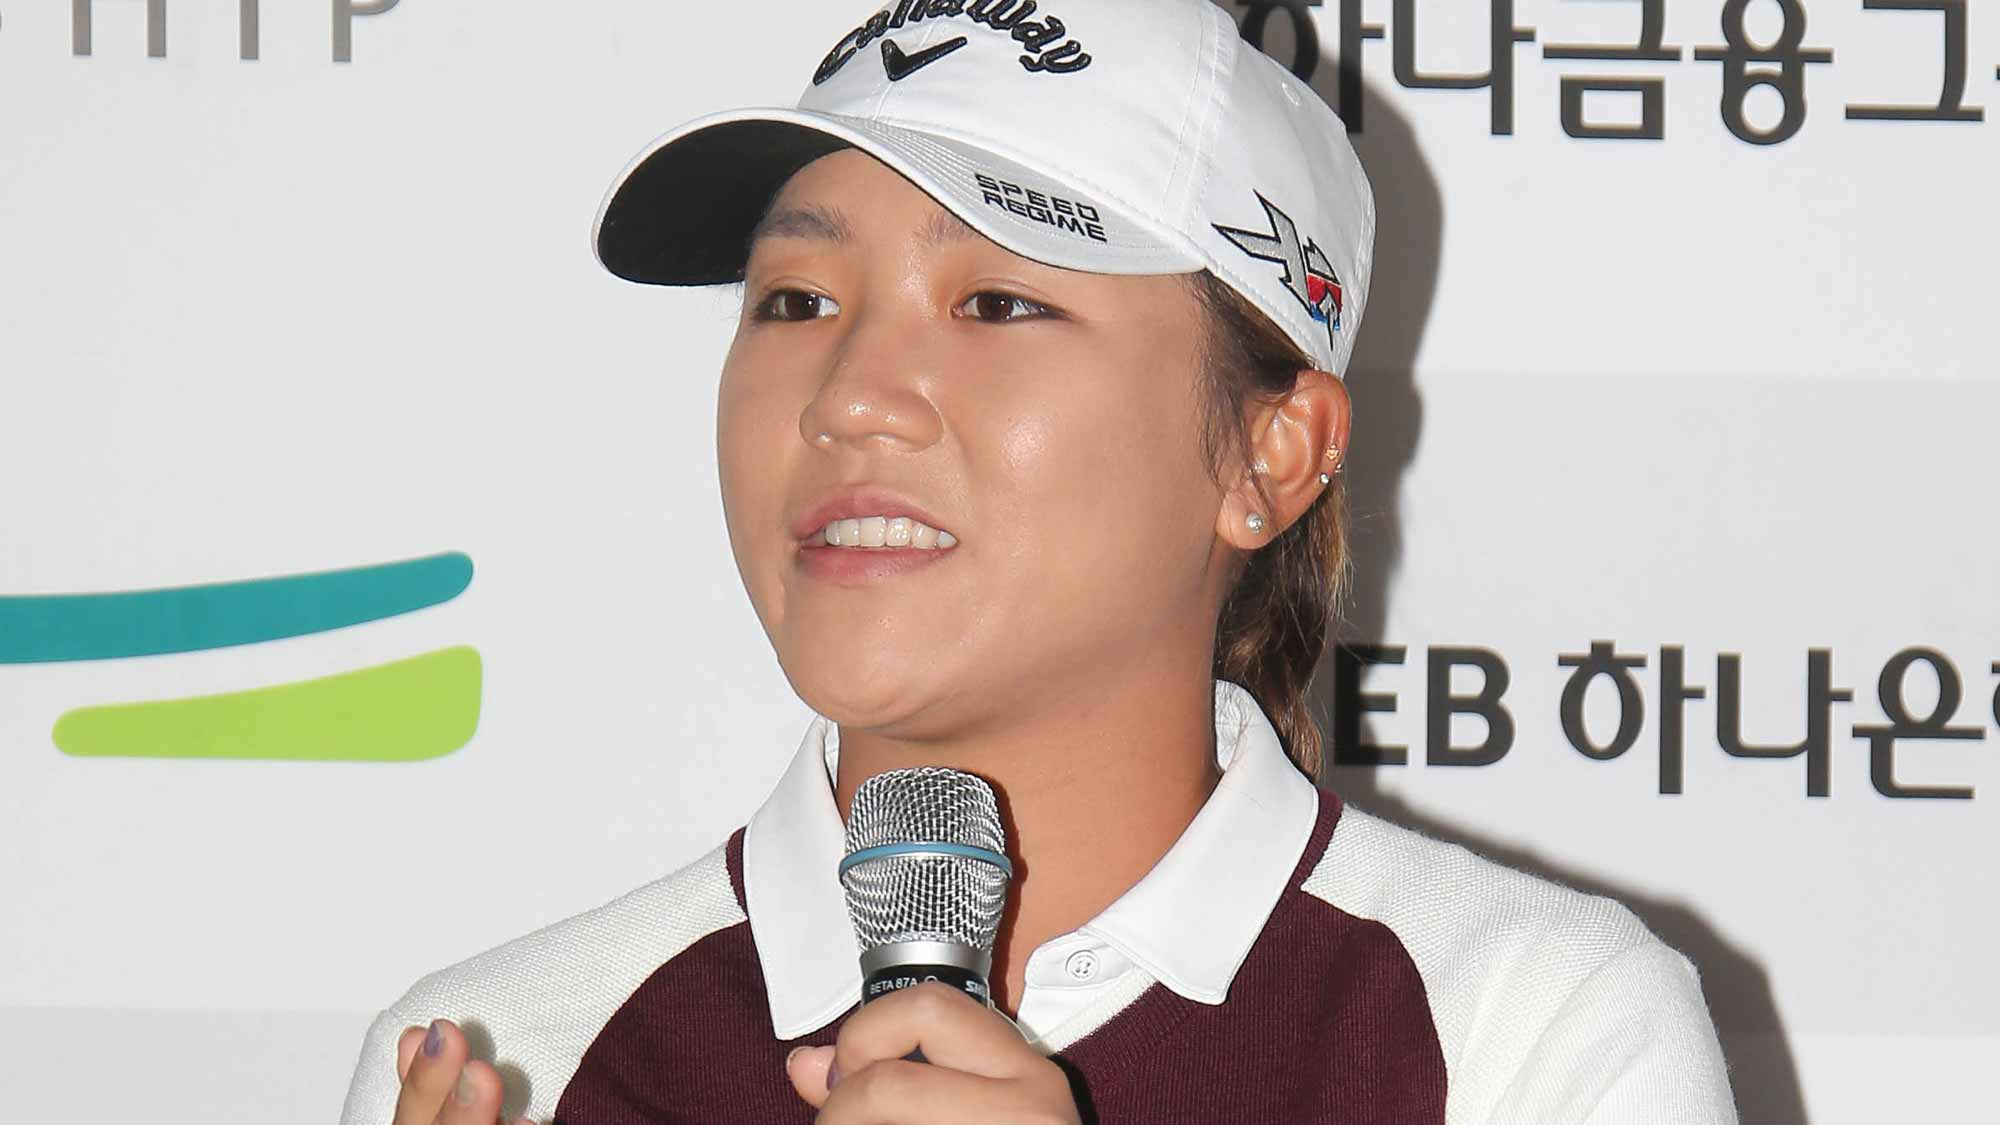 Lydia Ko Addresses The Media During A Pre-Tournament Press Conference at LPGA KEB Hana Bank Championship